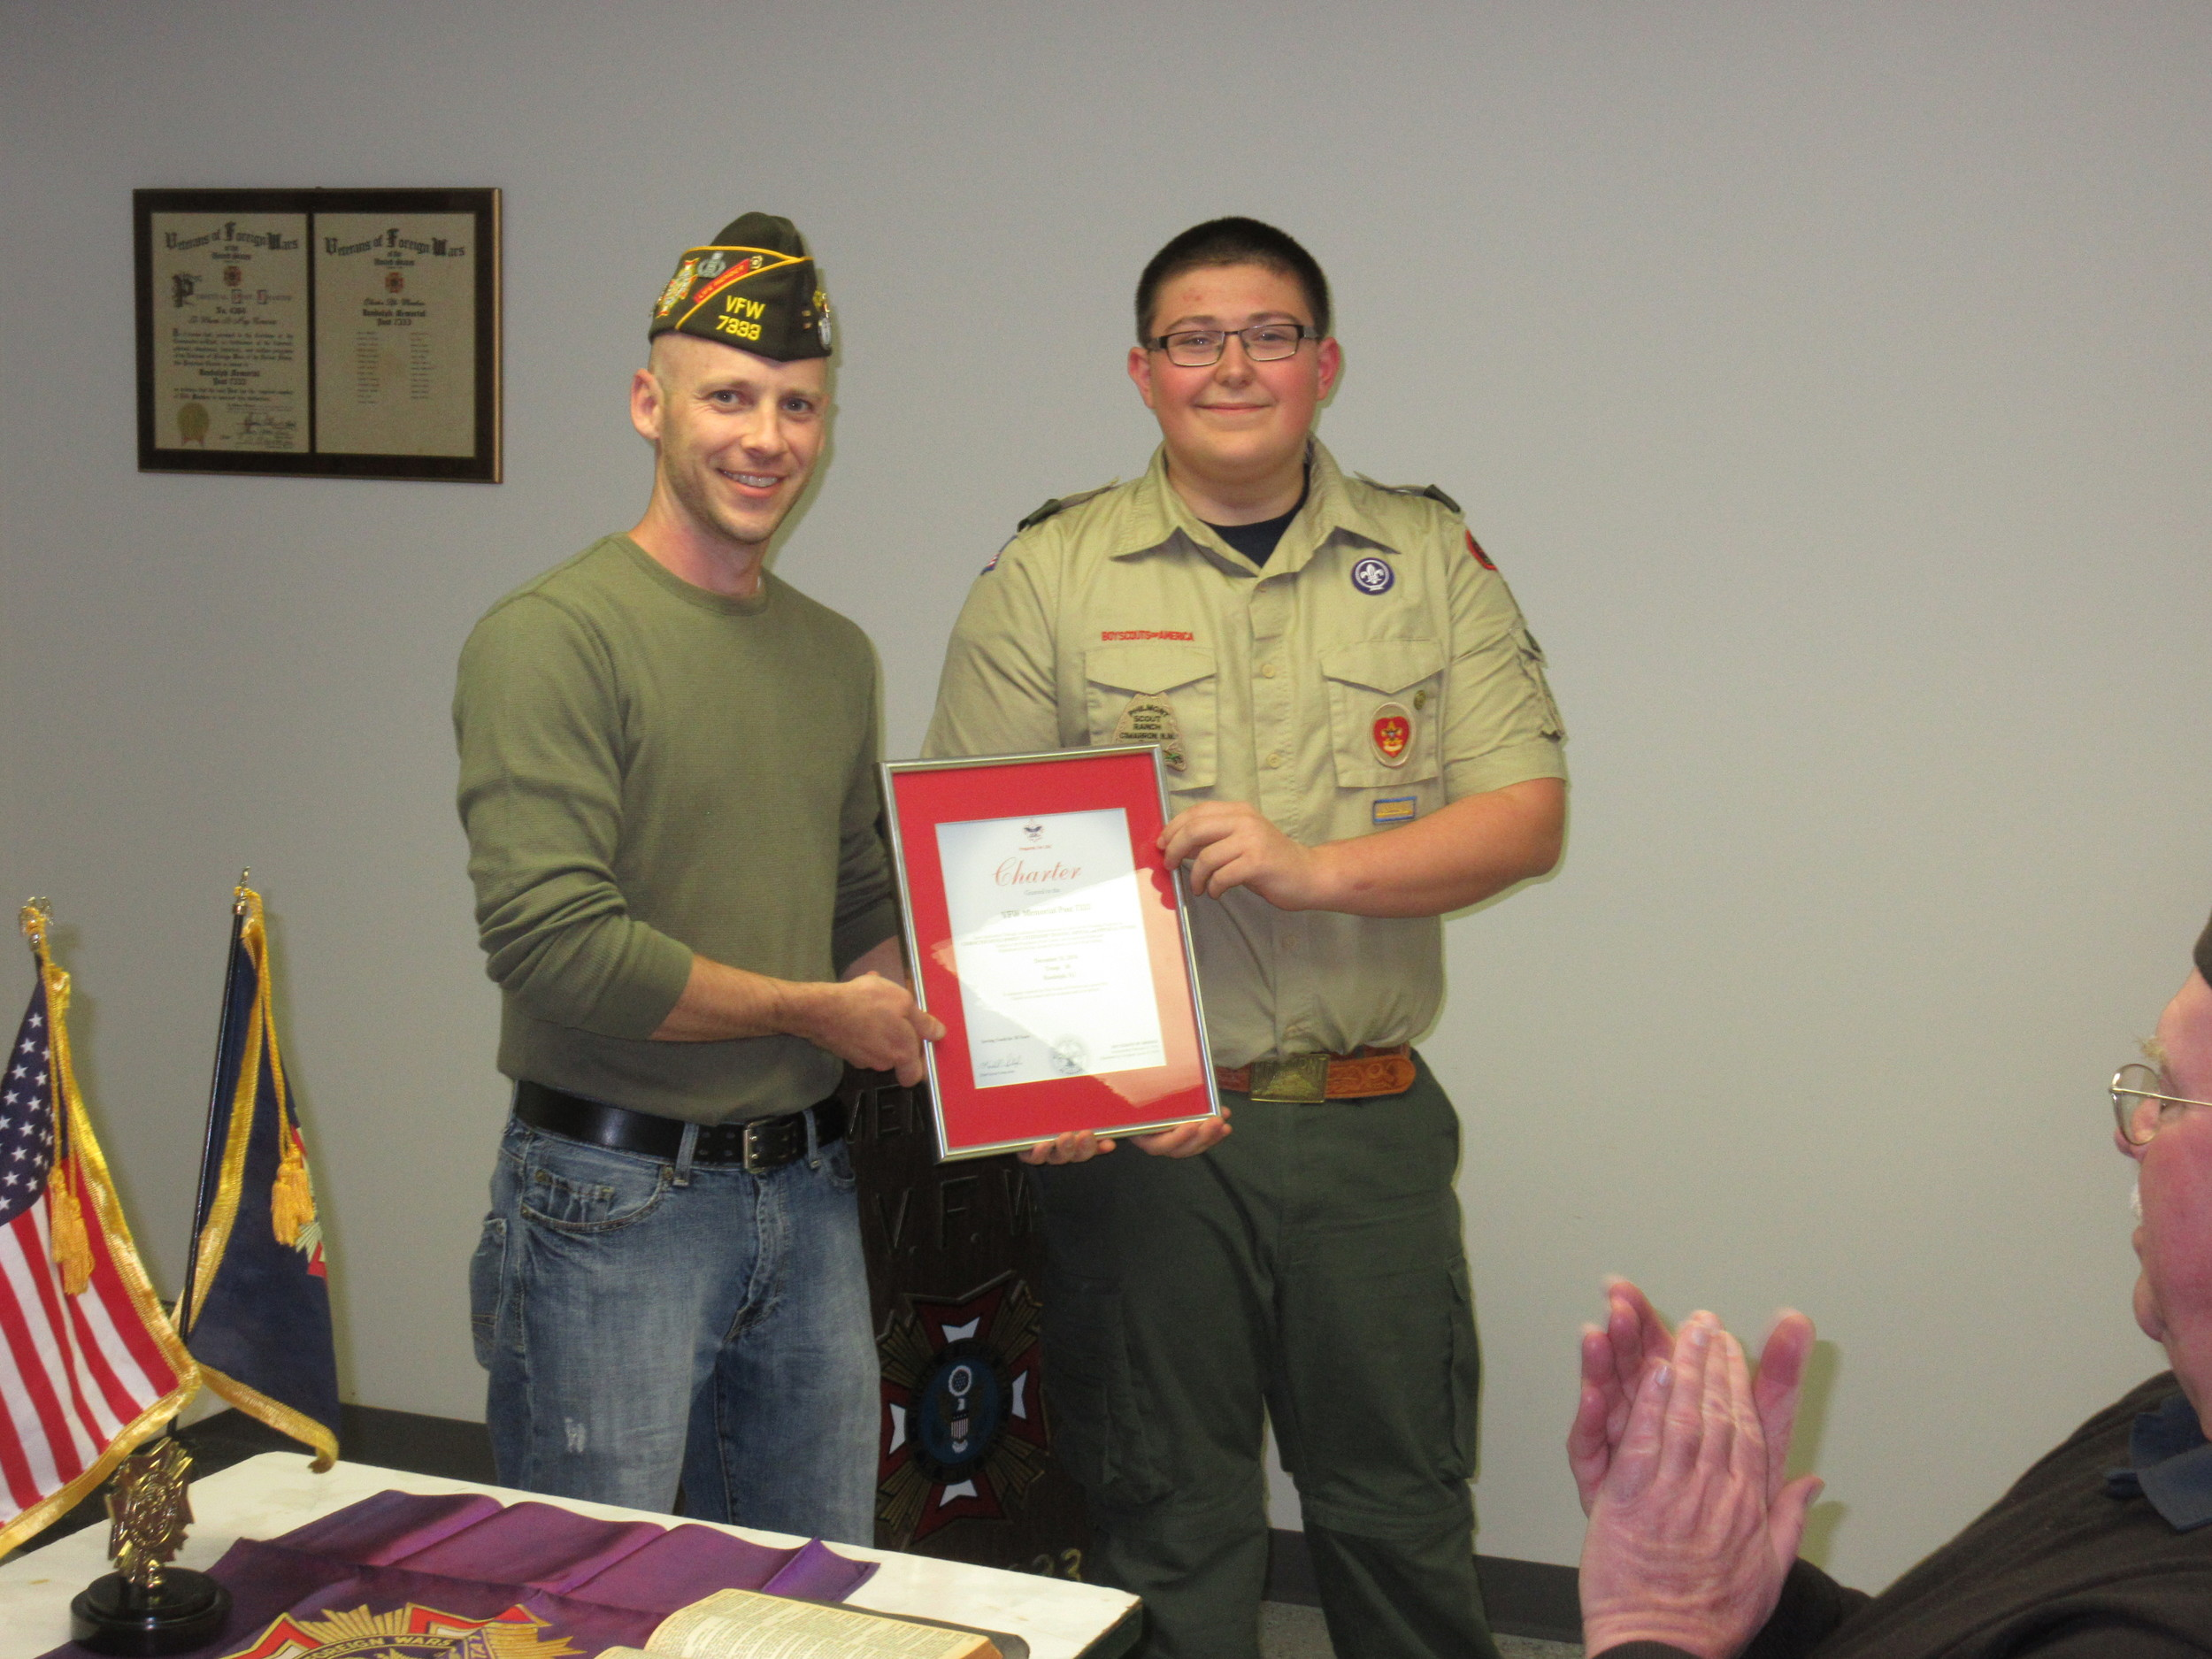 Senior Patrol Leader Joey Celentano  presented the 2016 Boy Scout Troop 50 Charter to VFW Post 7333 Commander Scott Montanio on March 15.  VFW Post 7333 has sponsored Troop 50 for the past 30 years.